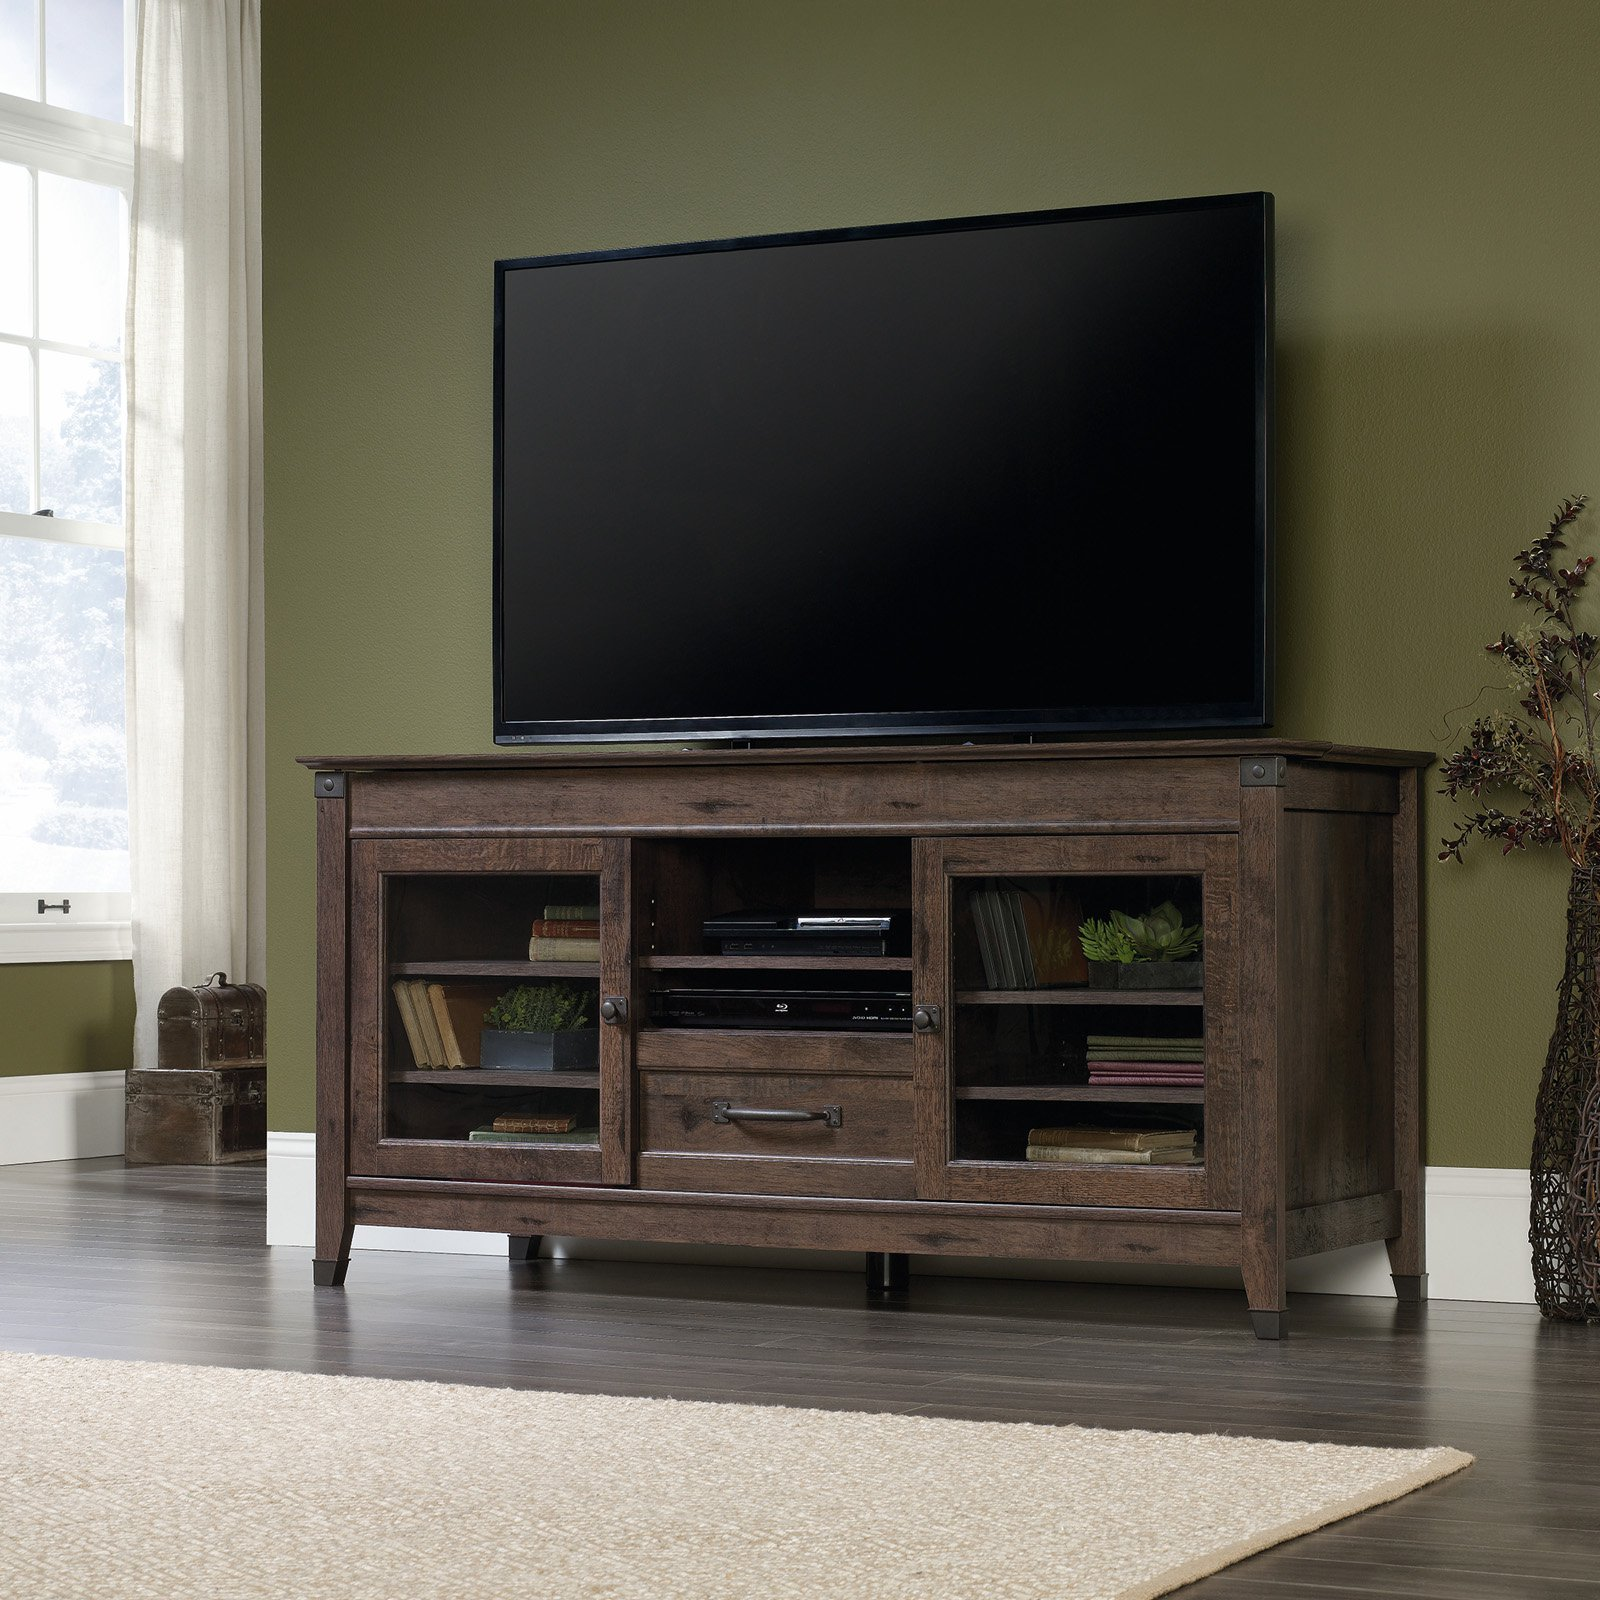 Sauder Carson Forge Entertainment Credenza for TVs up to 60\ by Sauder Woodworking